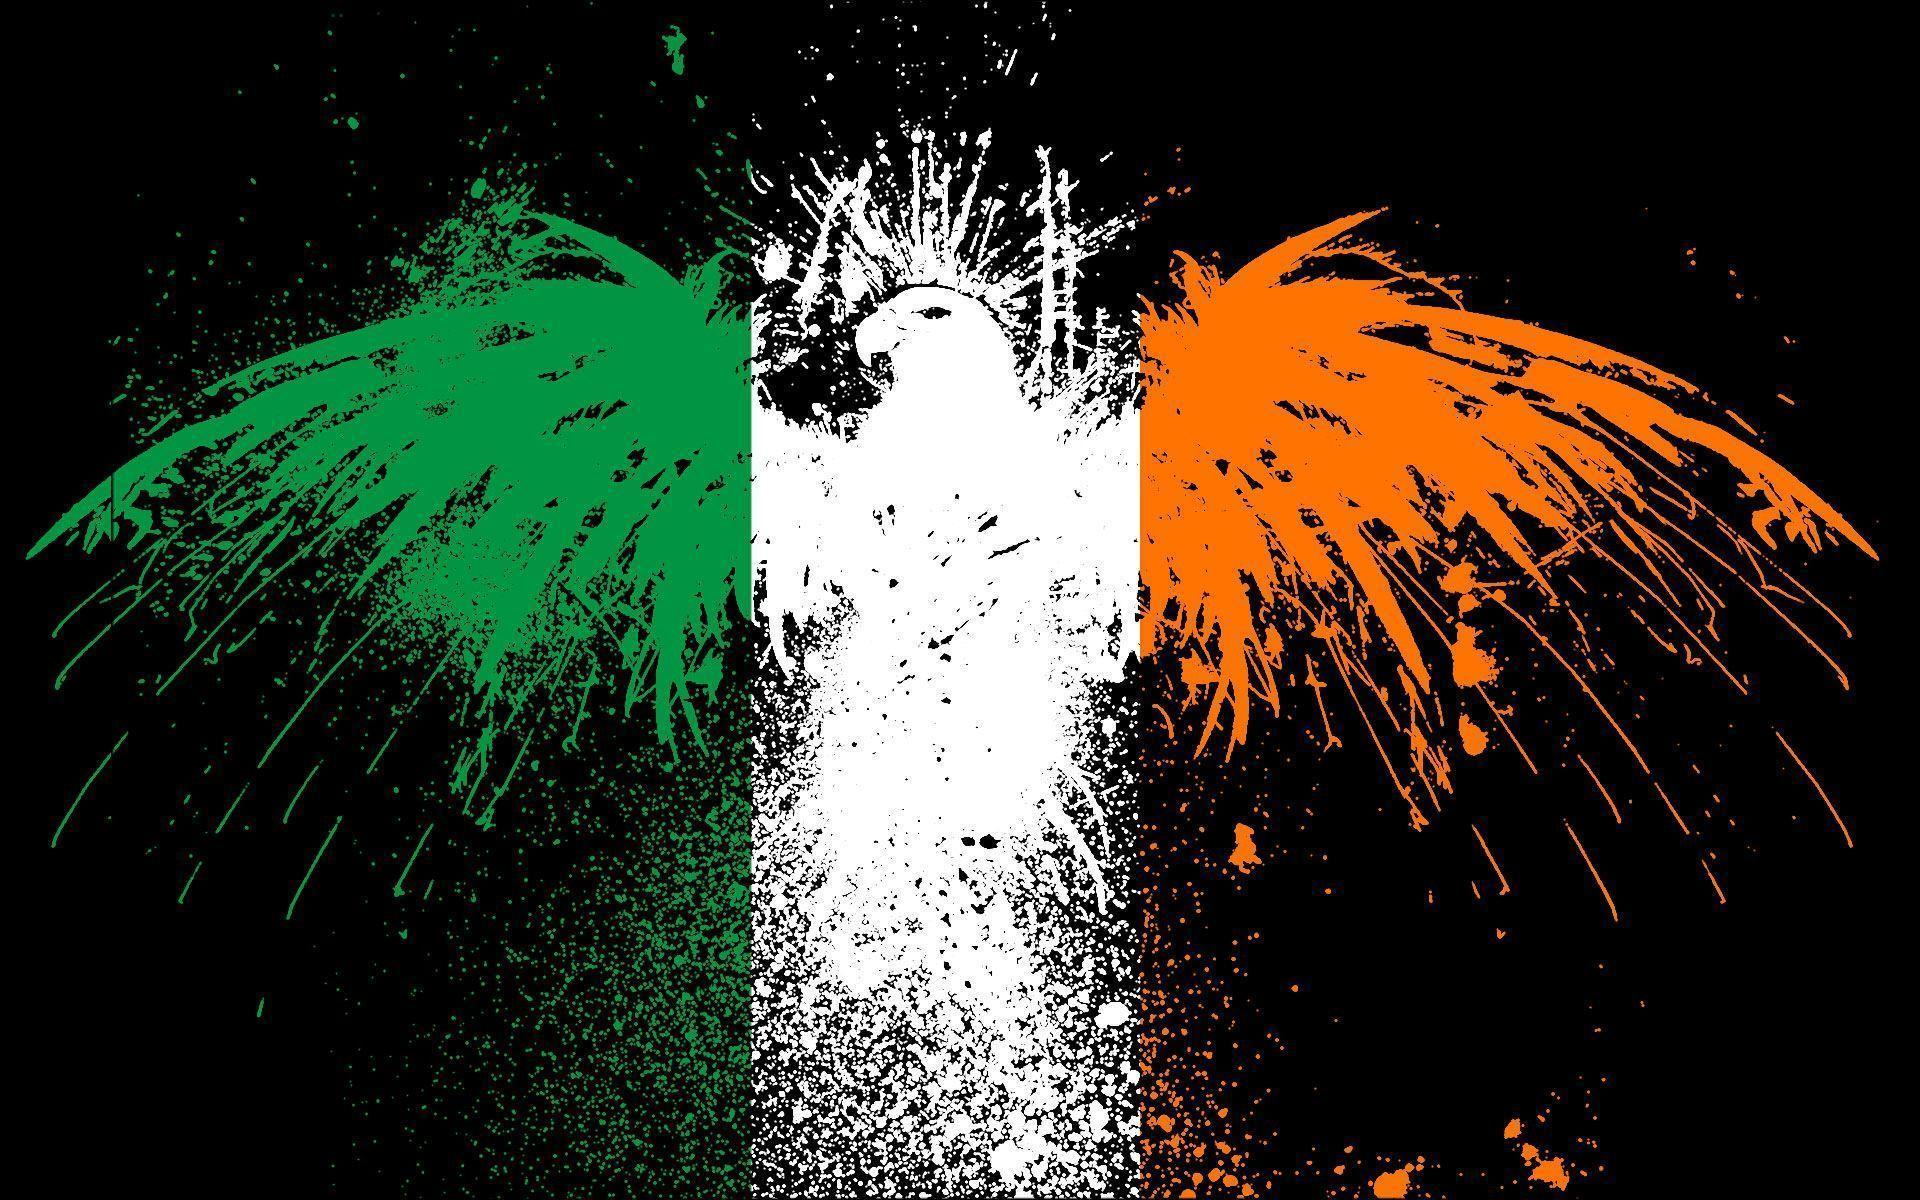 Irish Wallpapers Wallpaper Cave  1920x1200 Jpeg